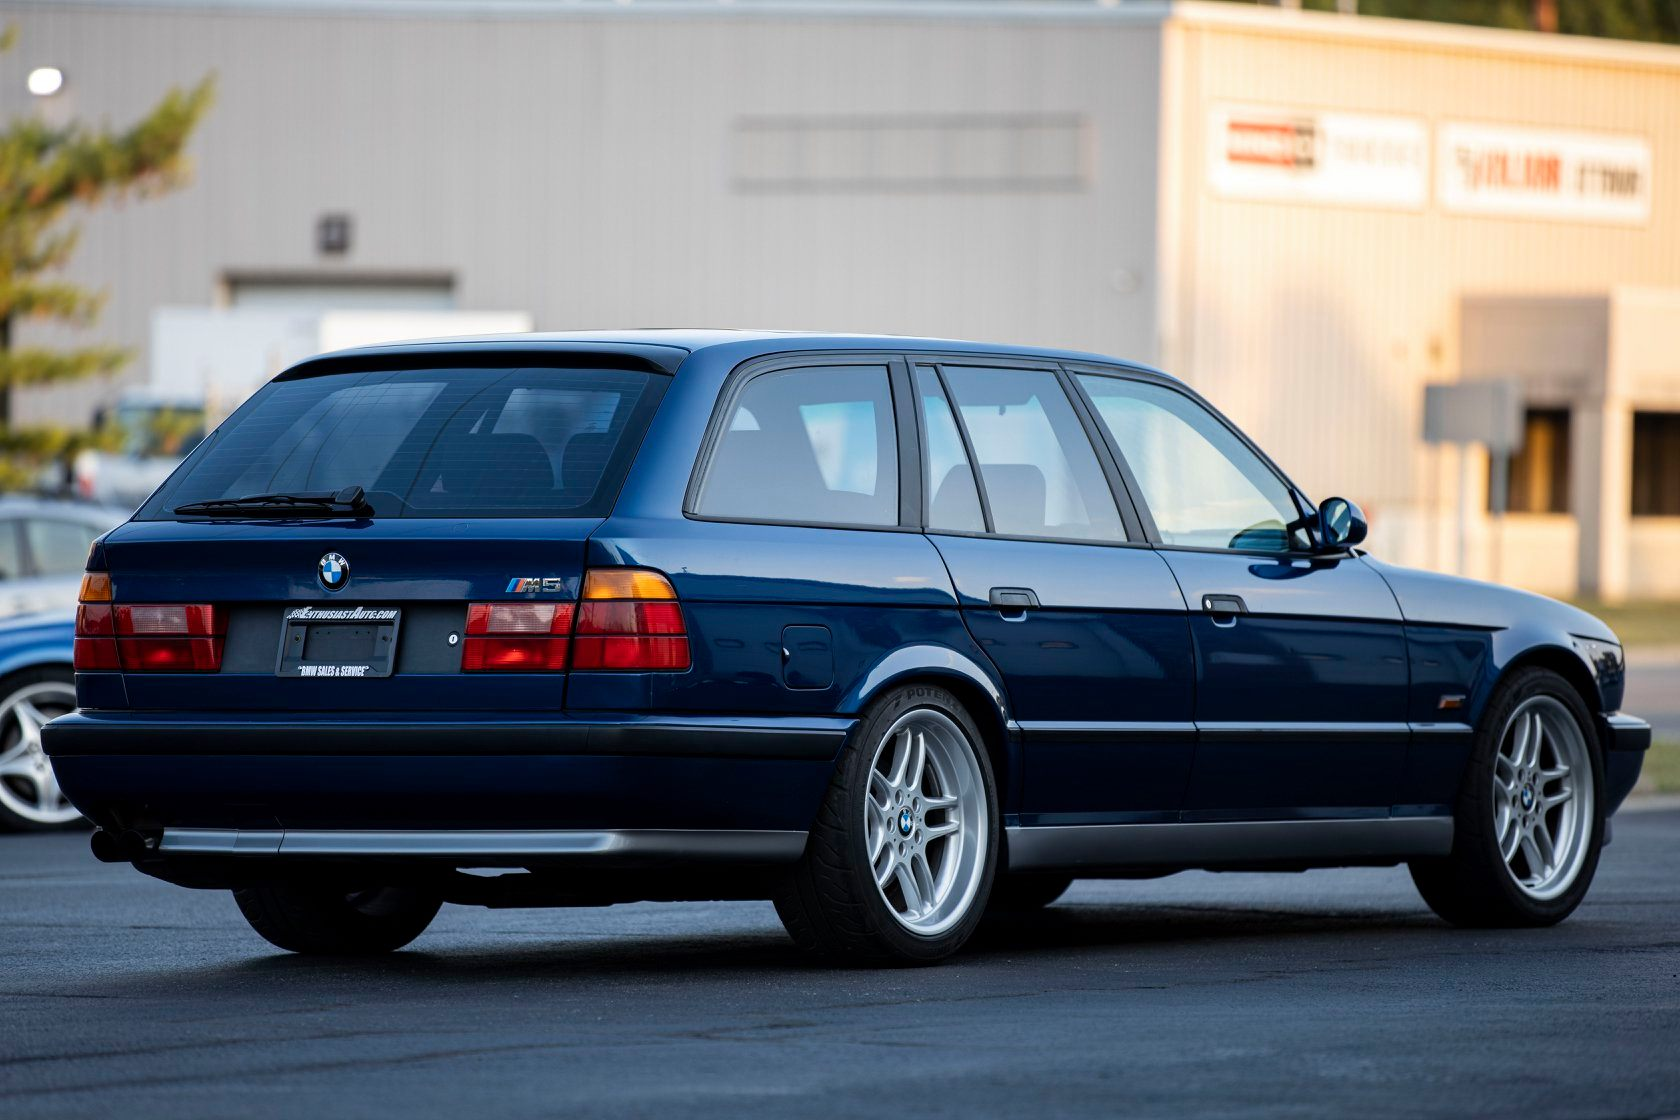 Video This 1994 Bmw E34 M5 Touring Is Up For Grabs Probably Expensive